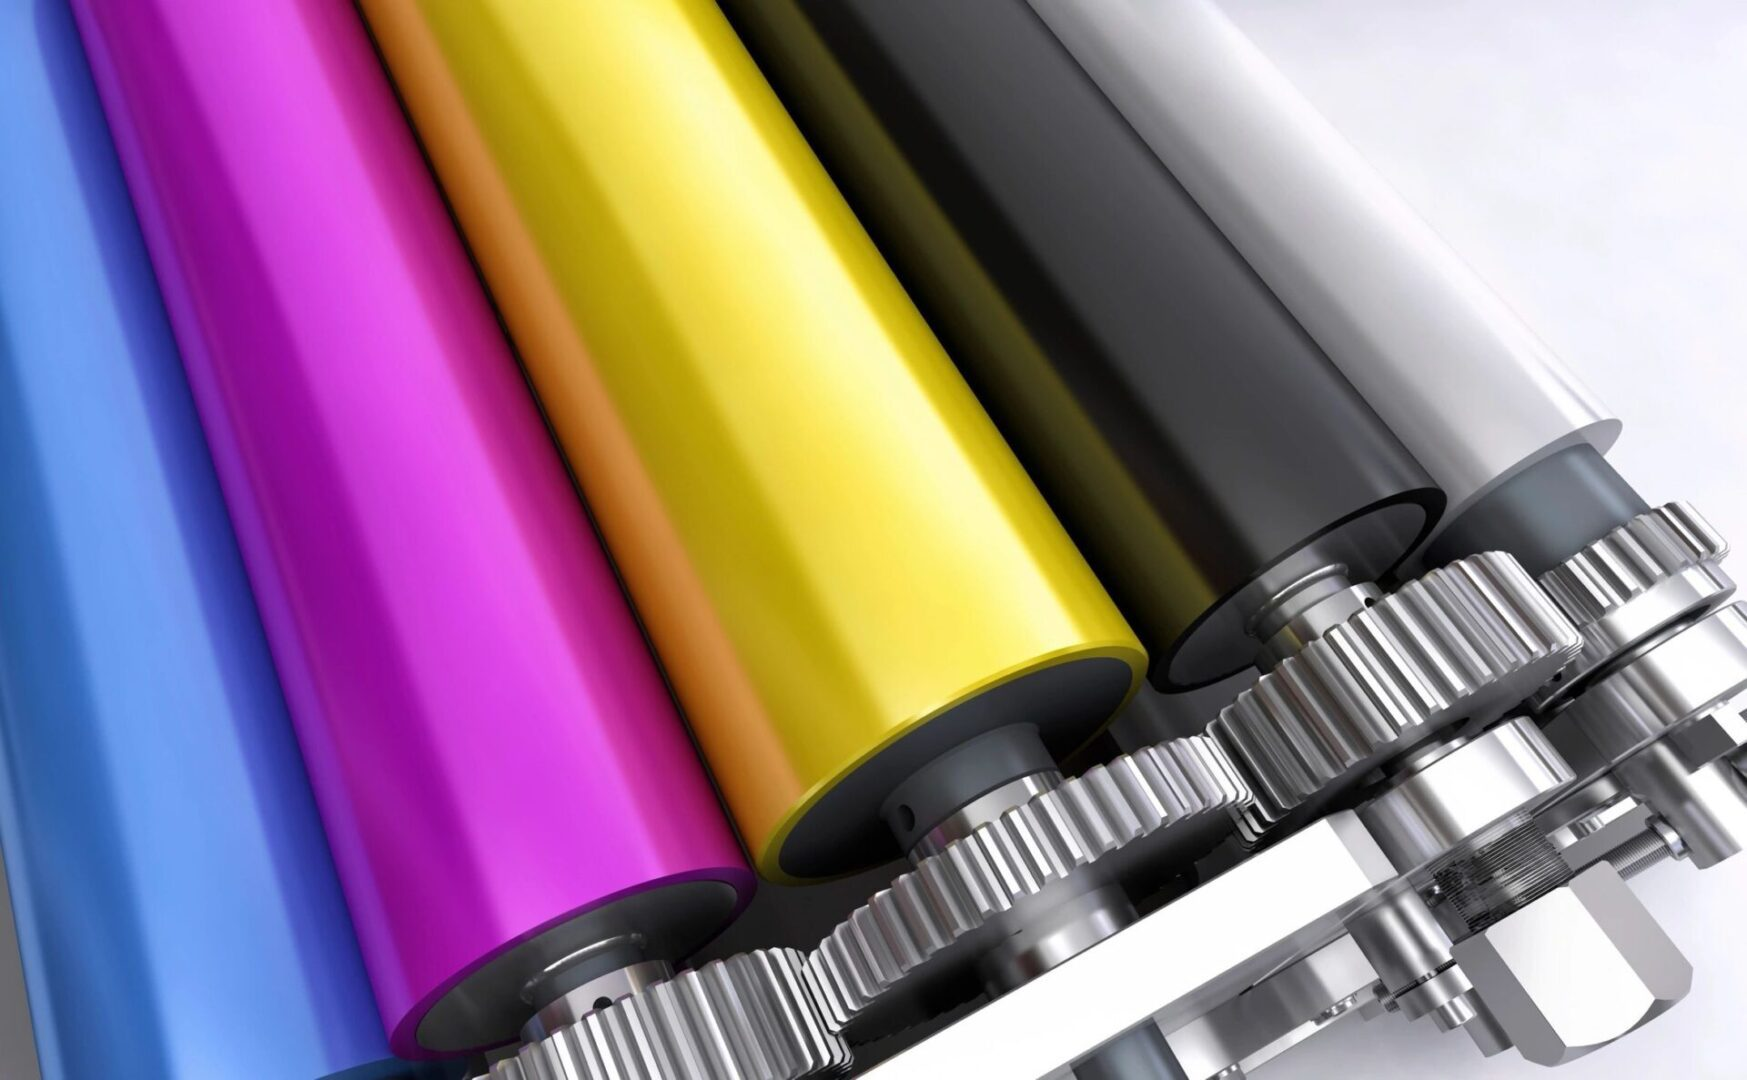 Printing Stock Images (3)